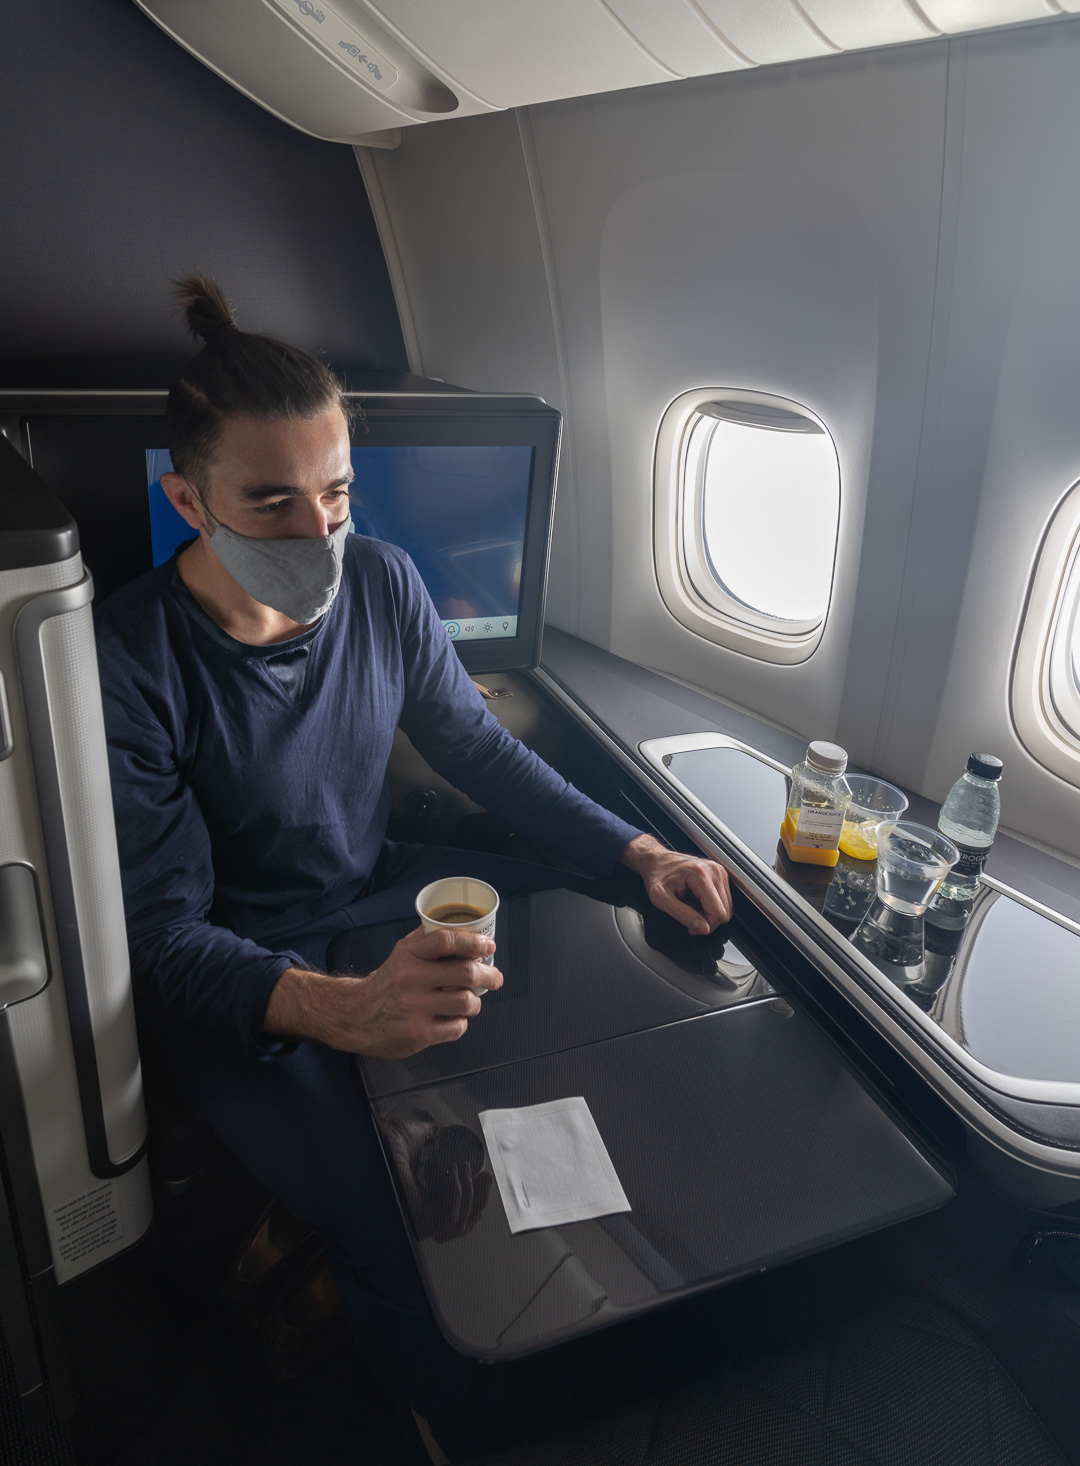 BA 77WN F 51 - REVIEW - British Airways : First Class Suites - B777 - London (LHR) to Malé (MLE) - [COVID-era]